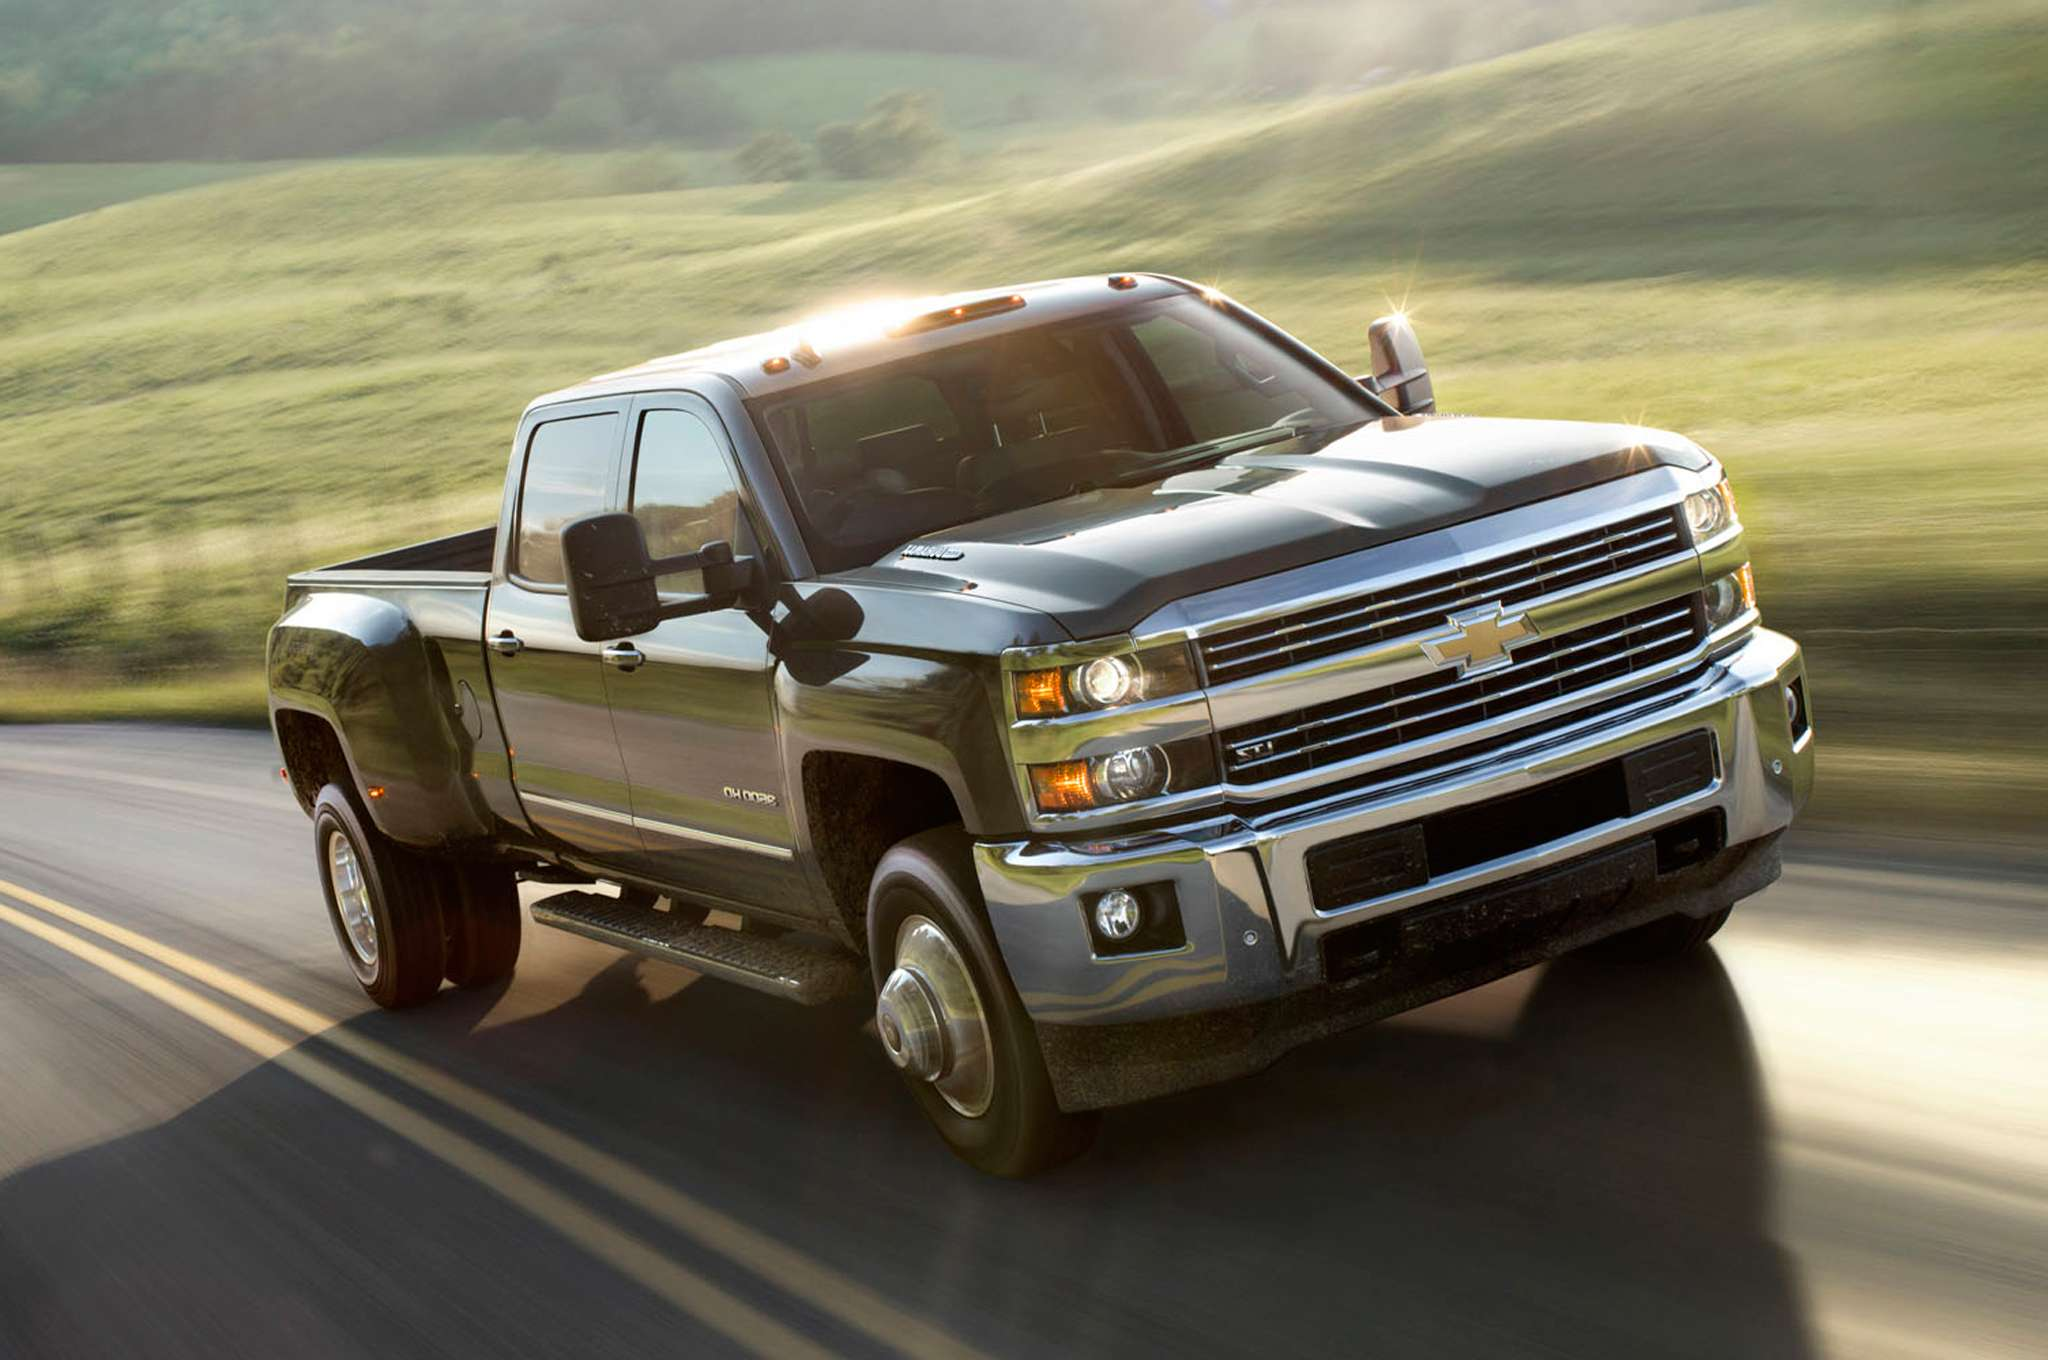 car wallpapers download 2015 Chevy Silverado 2500hd Duramax Lifted 2048x1360